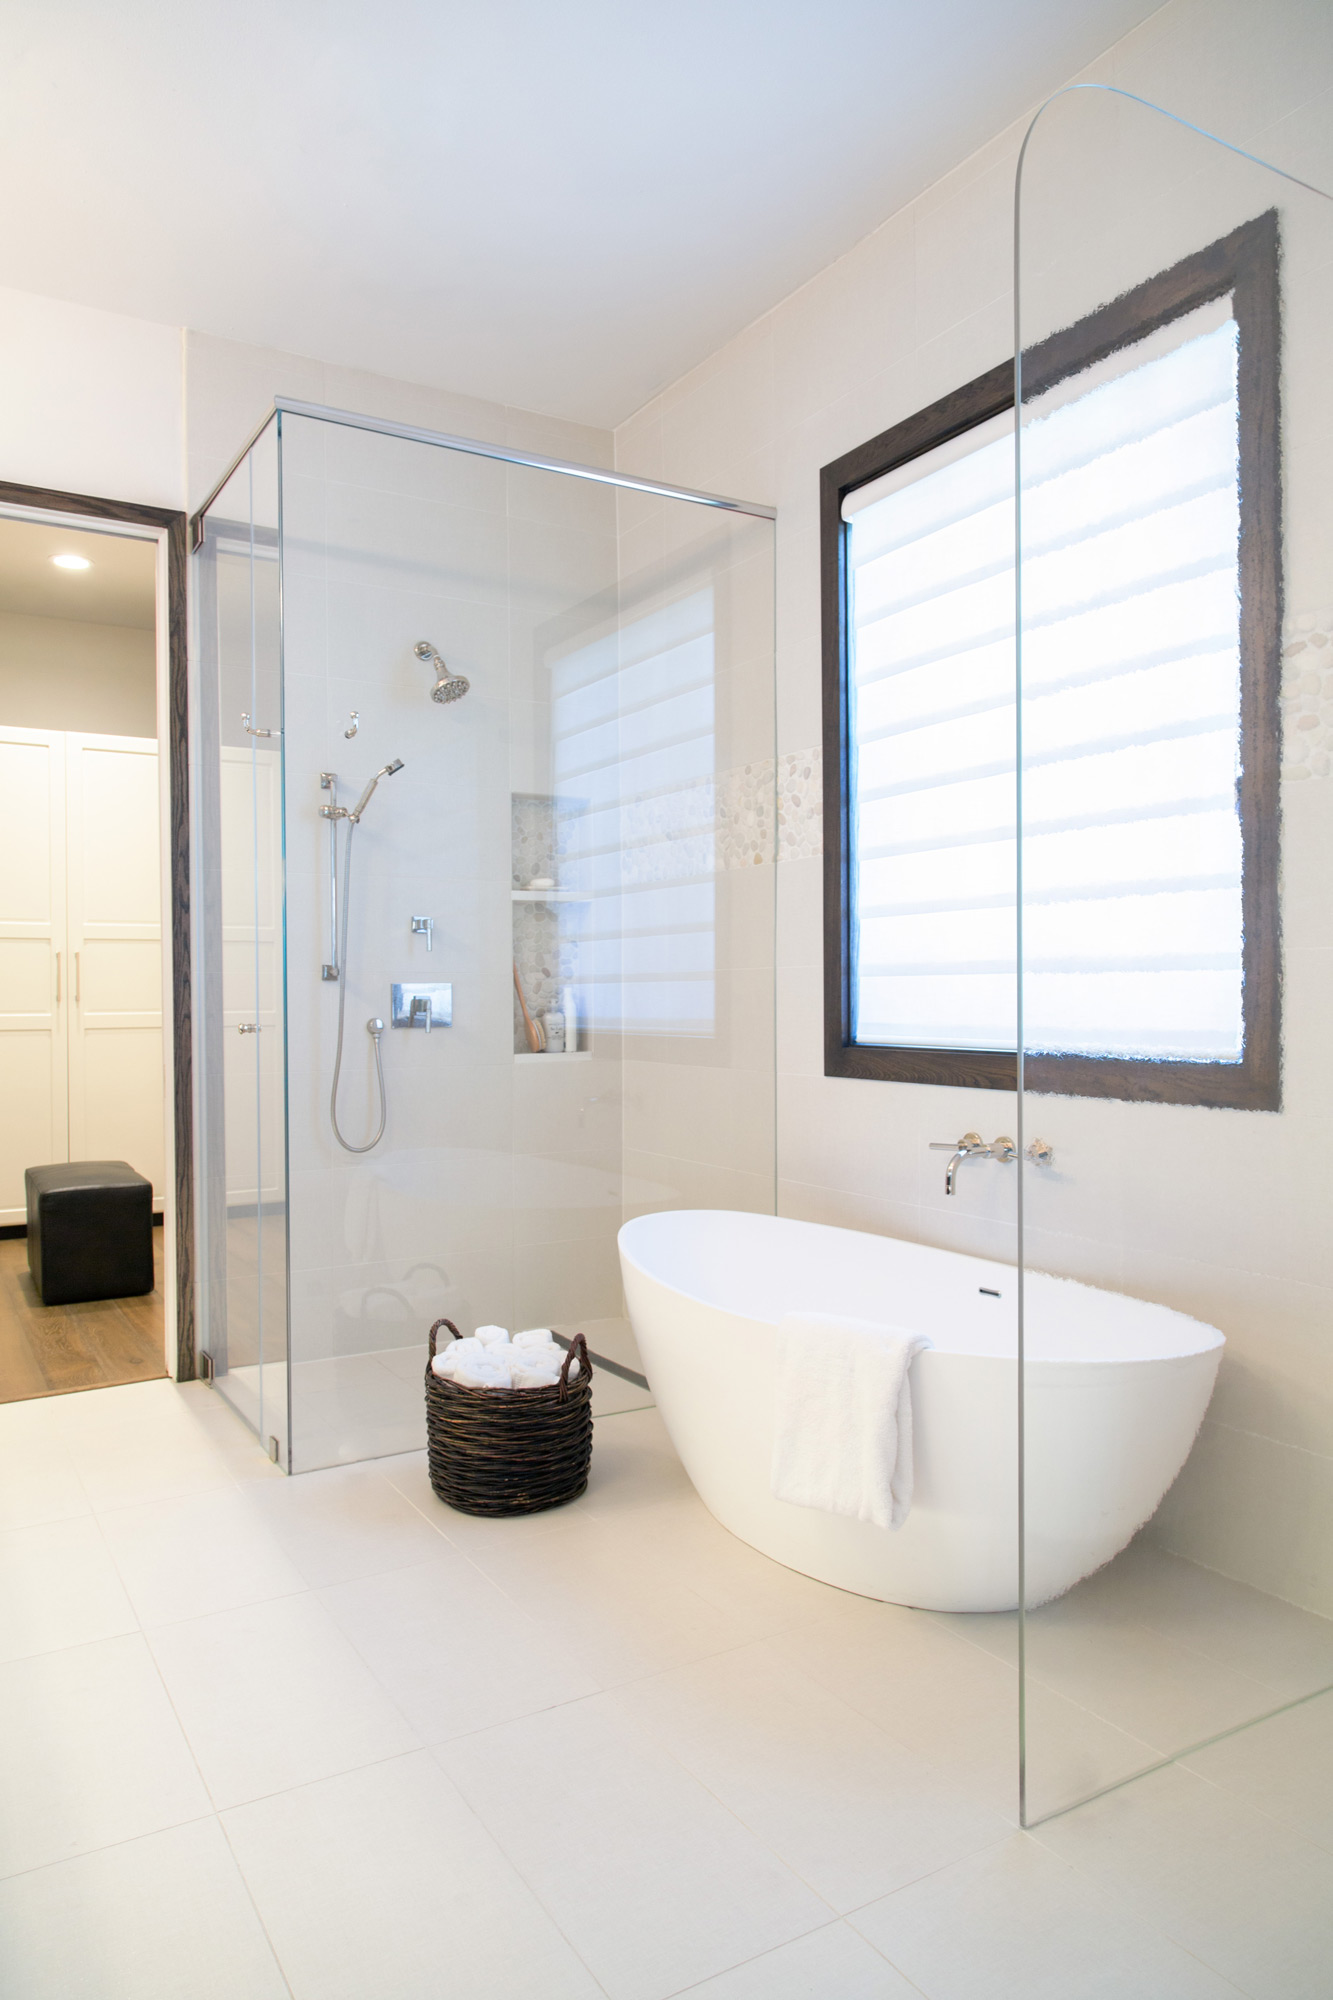 Master bathroom remodel with curbless shower, linear drain and new free standing tub | Interior Designer: Carla Aston / Photographer: Tori Aston #bathroomideas #bathroomremodel #zeroentryshower #lineardrain #curblessshower #freestandingtub